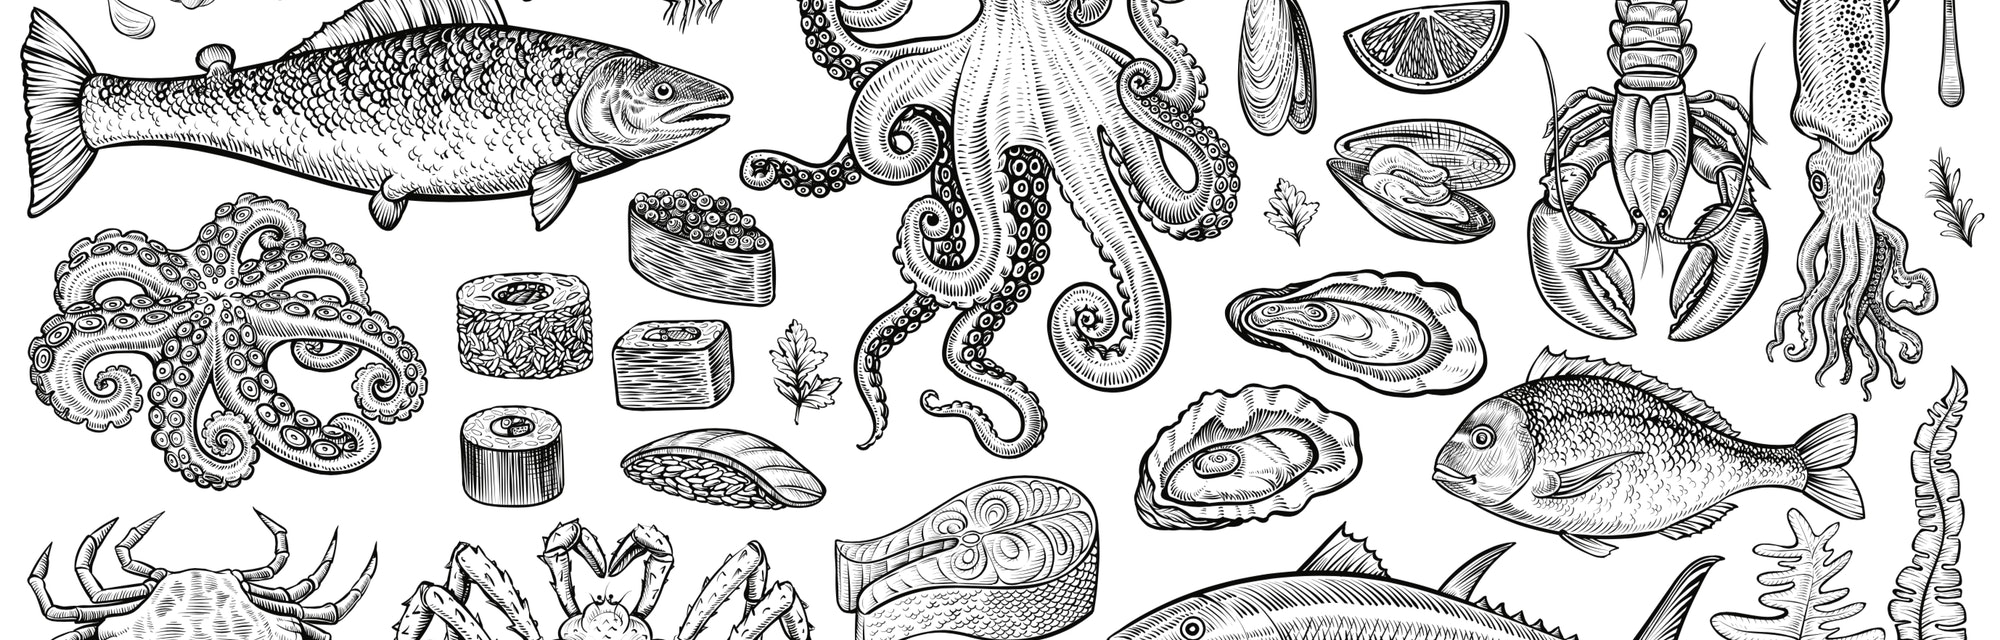 Seafood vector illustrations. Hand drawn line sea fishes, sushi rolls, oysters, mussels, lobster, squid, octopus, crabs, prawns, fish fillet, laminaria and wakame seaweeds. Healthy food natural set.